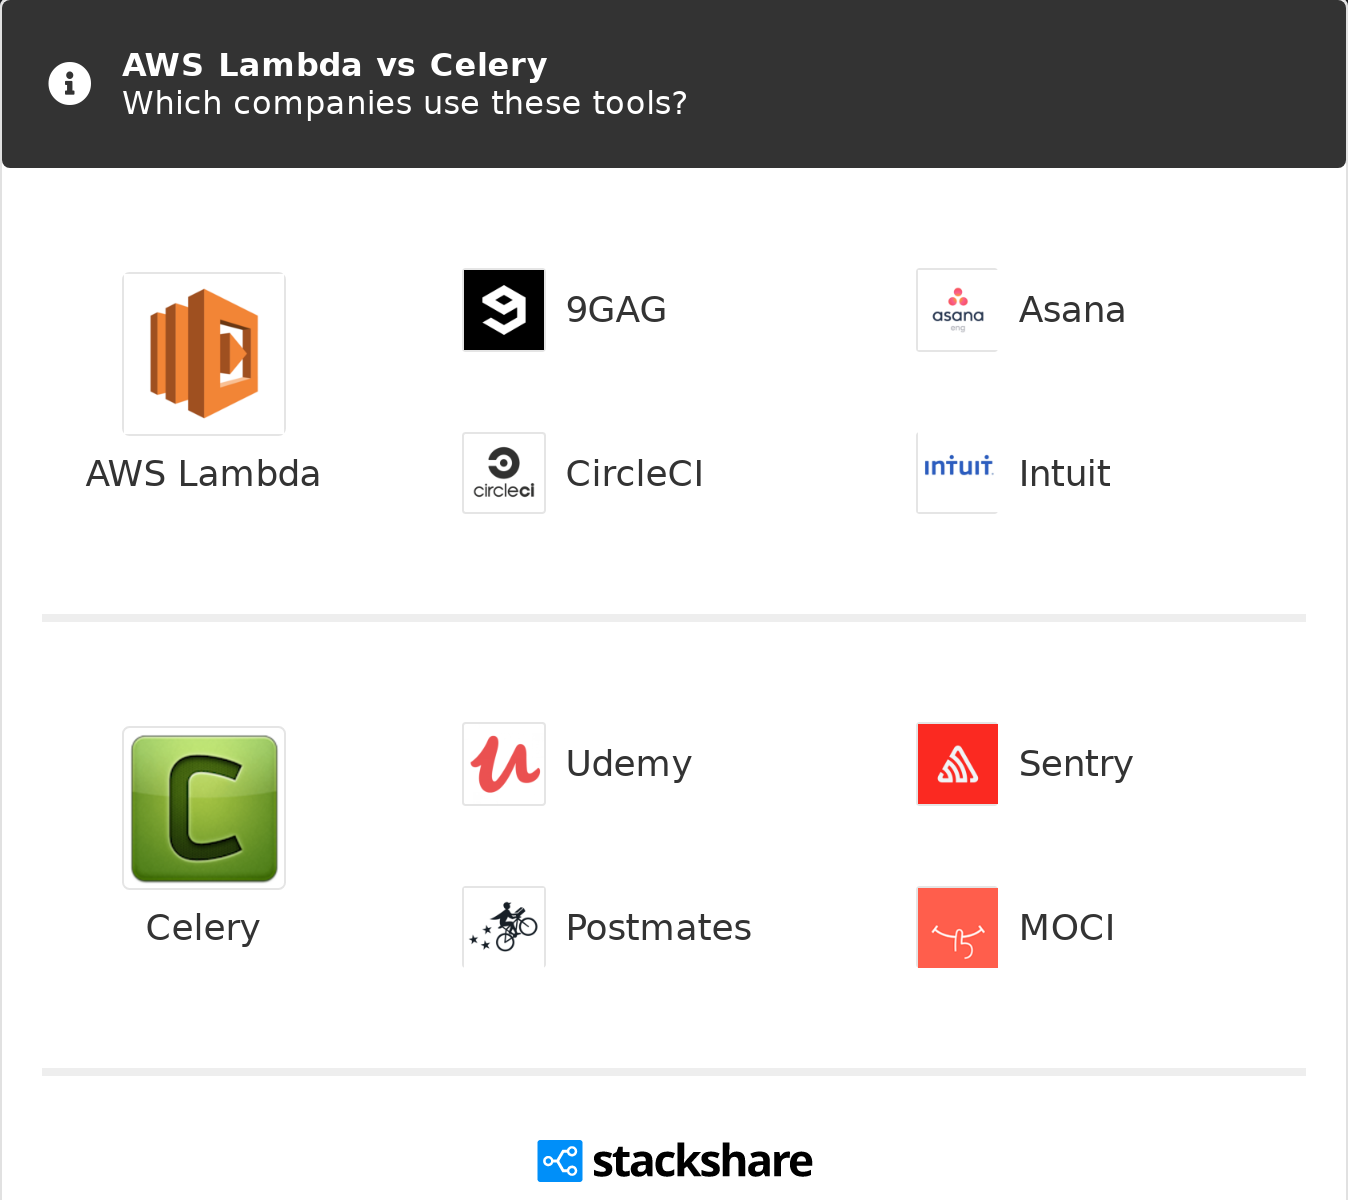 AWS Lambda vs Celery | What are the differences?